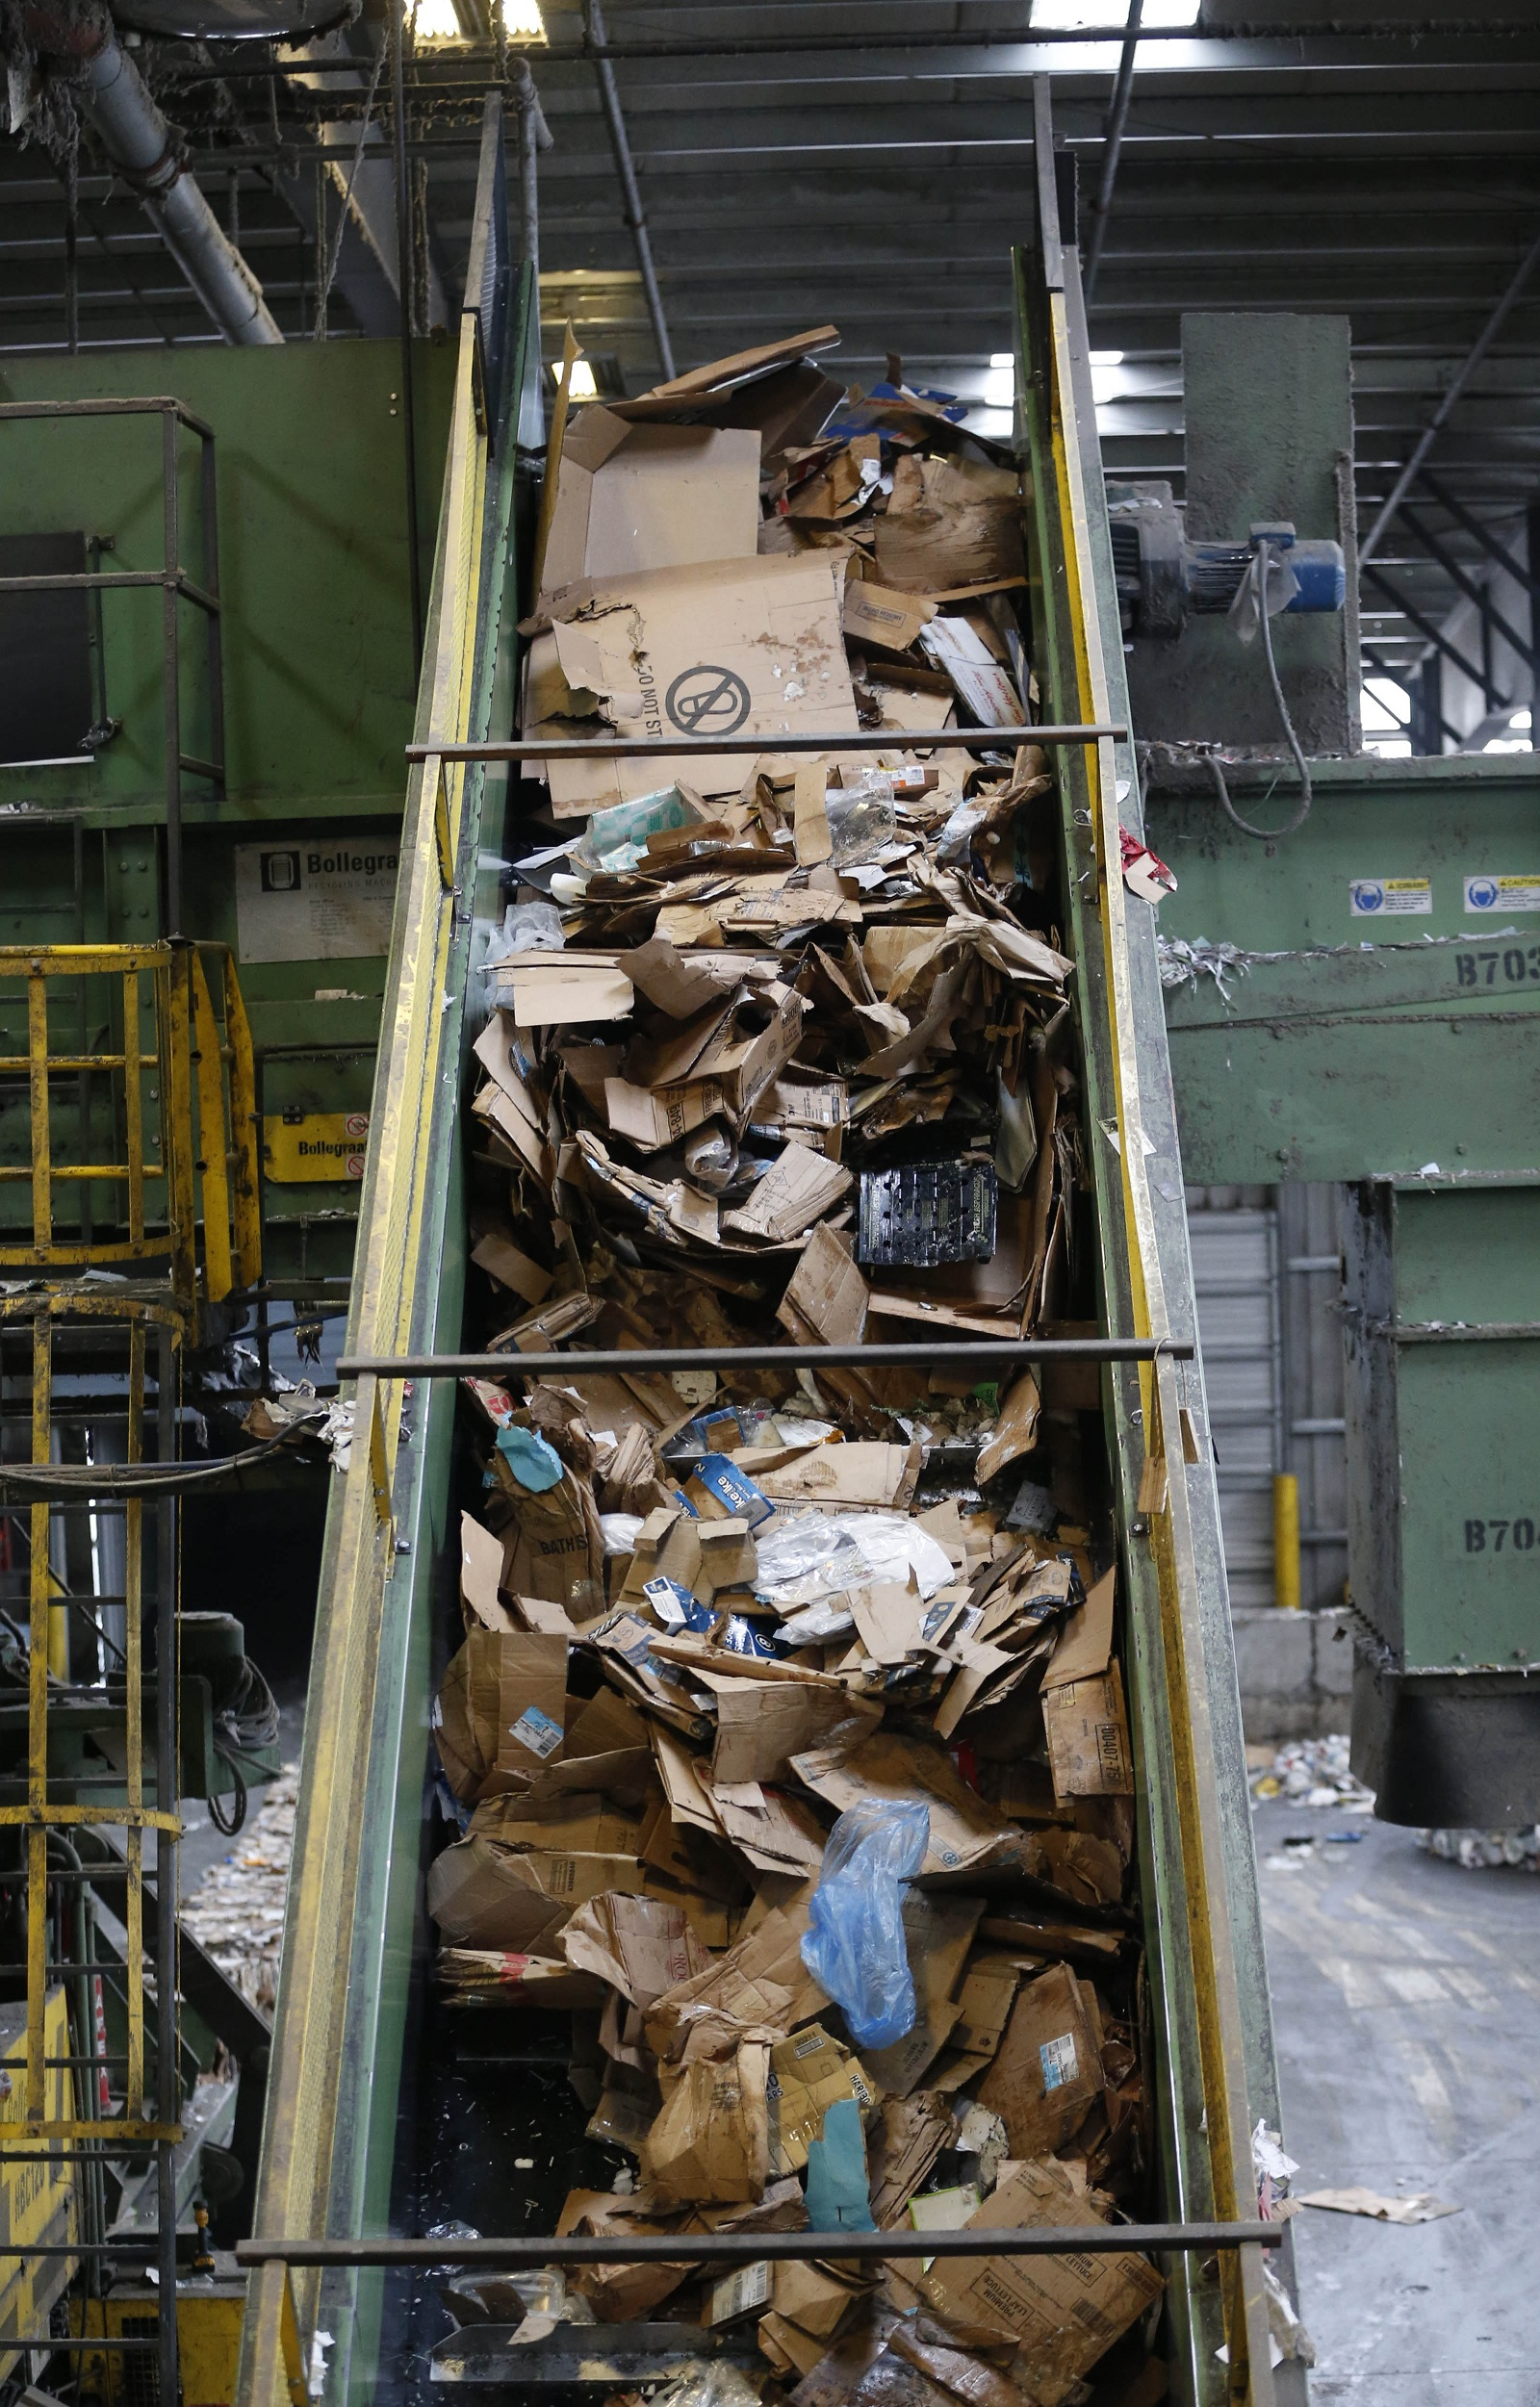 Now that you've gotten used to recycling, get used to doing